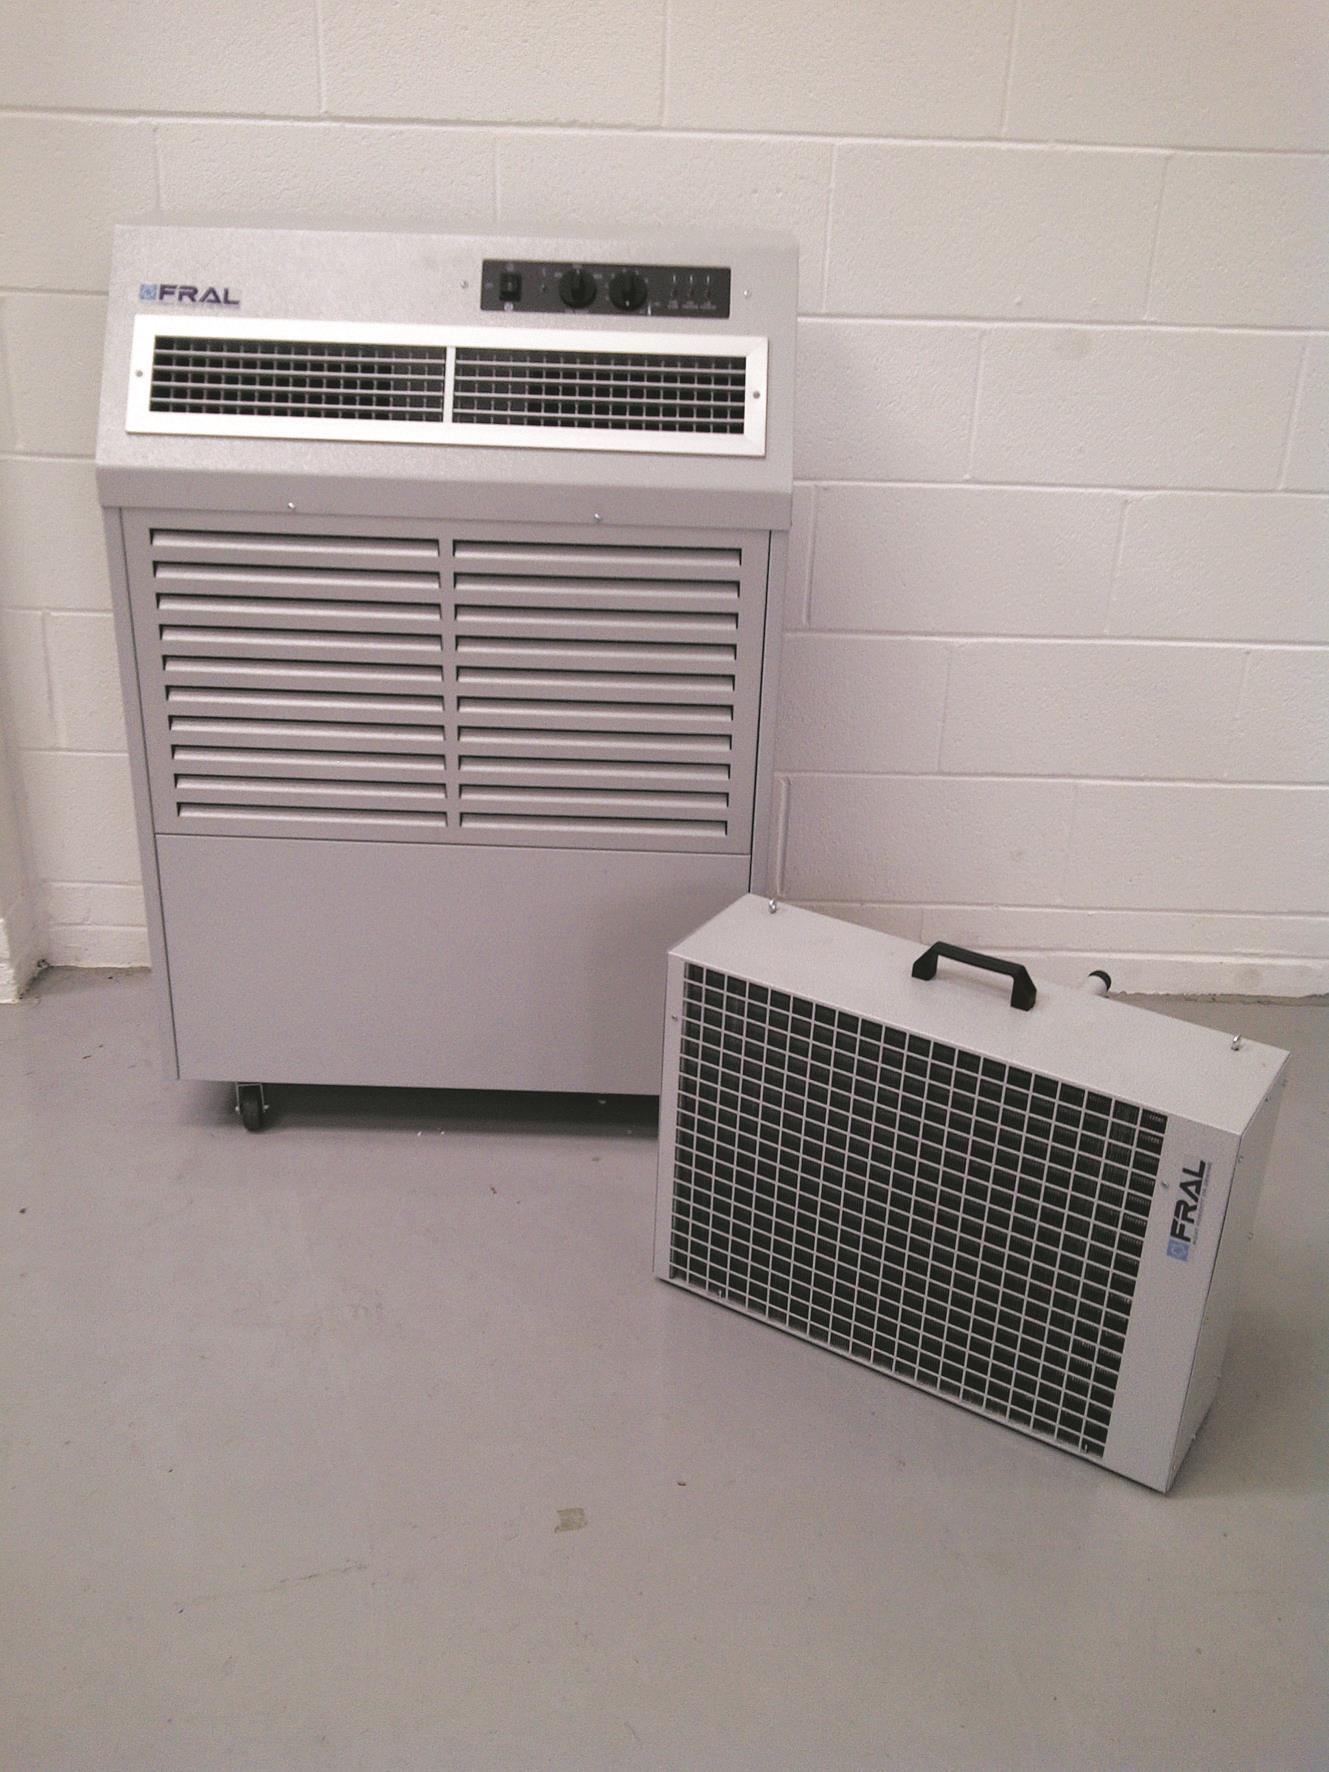 Fral Avalanche 7kw 23 000btu Split Portable Water Cooled